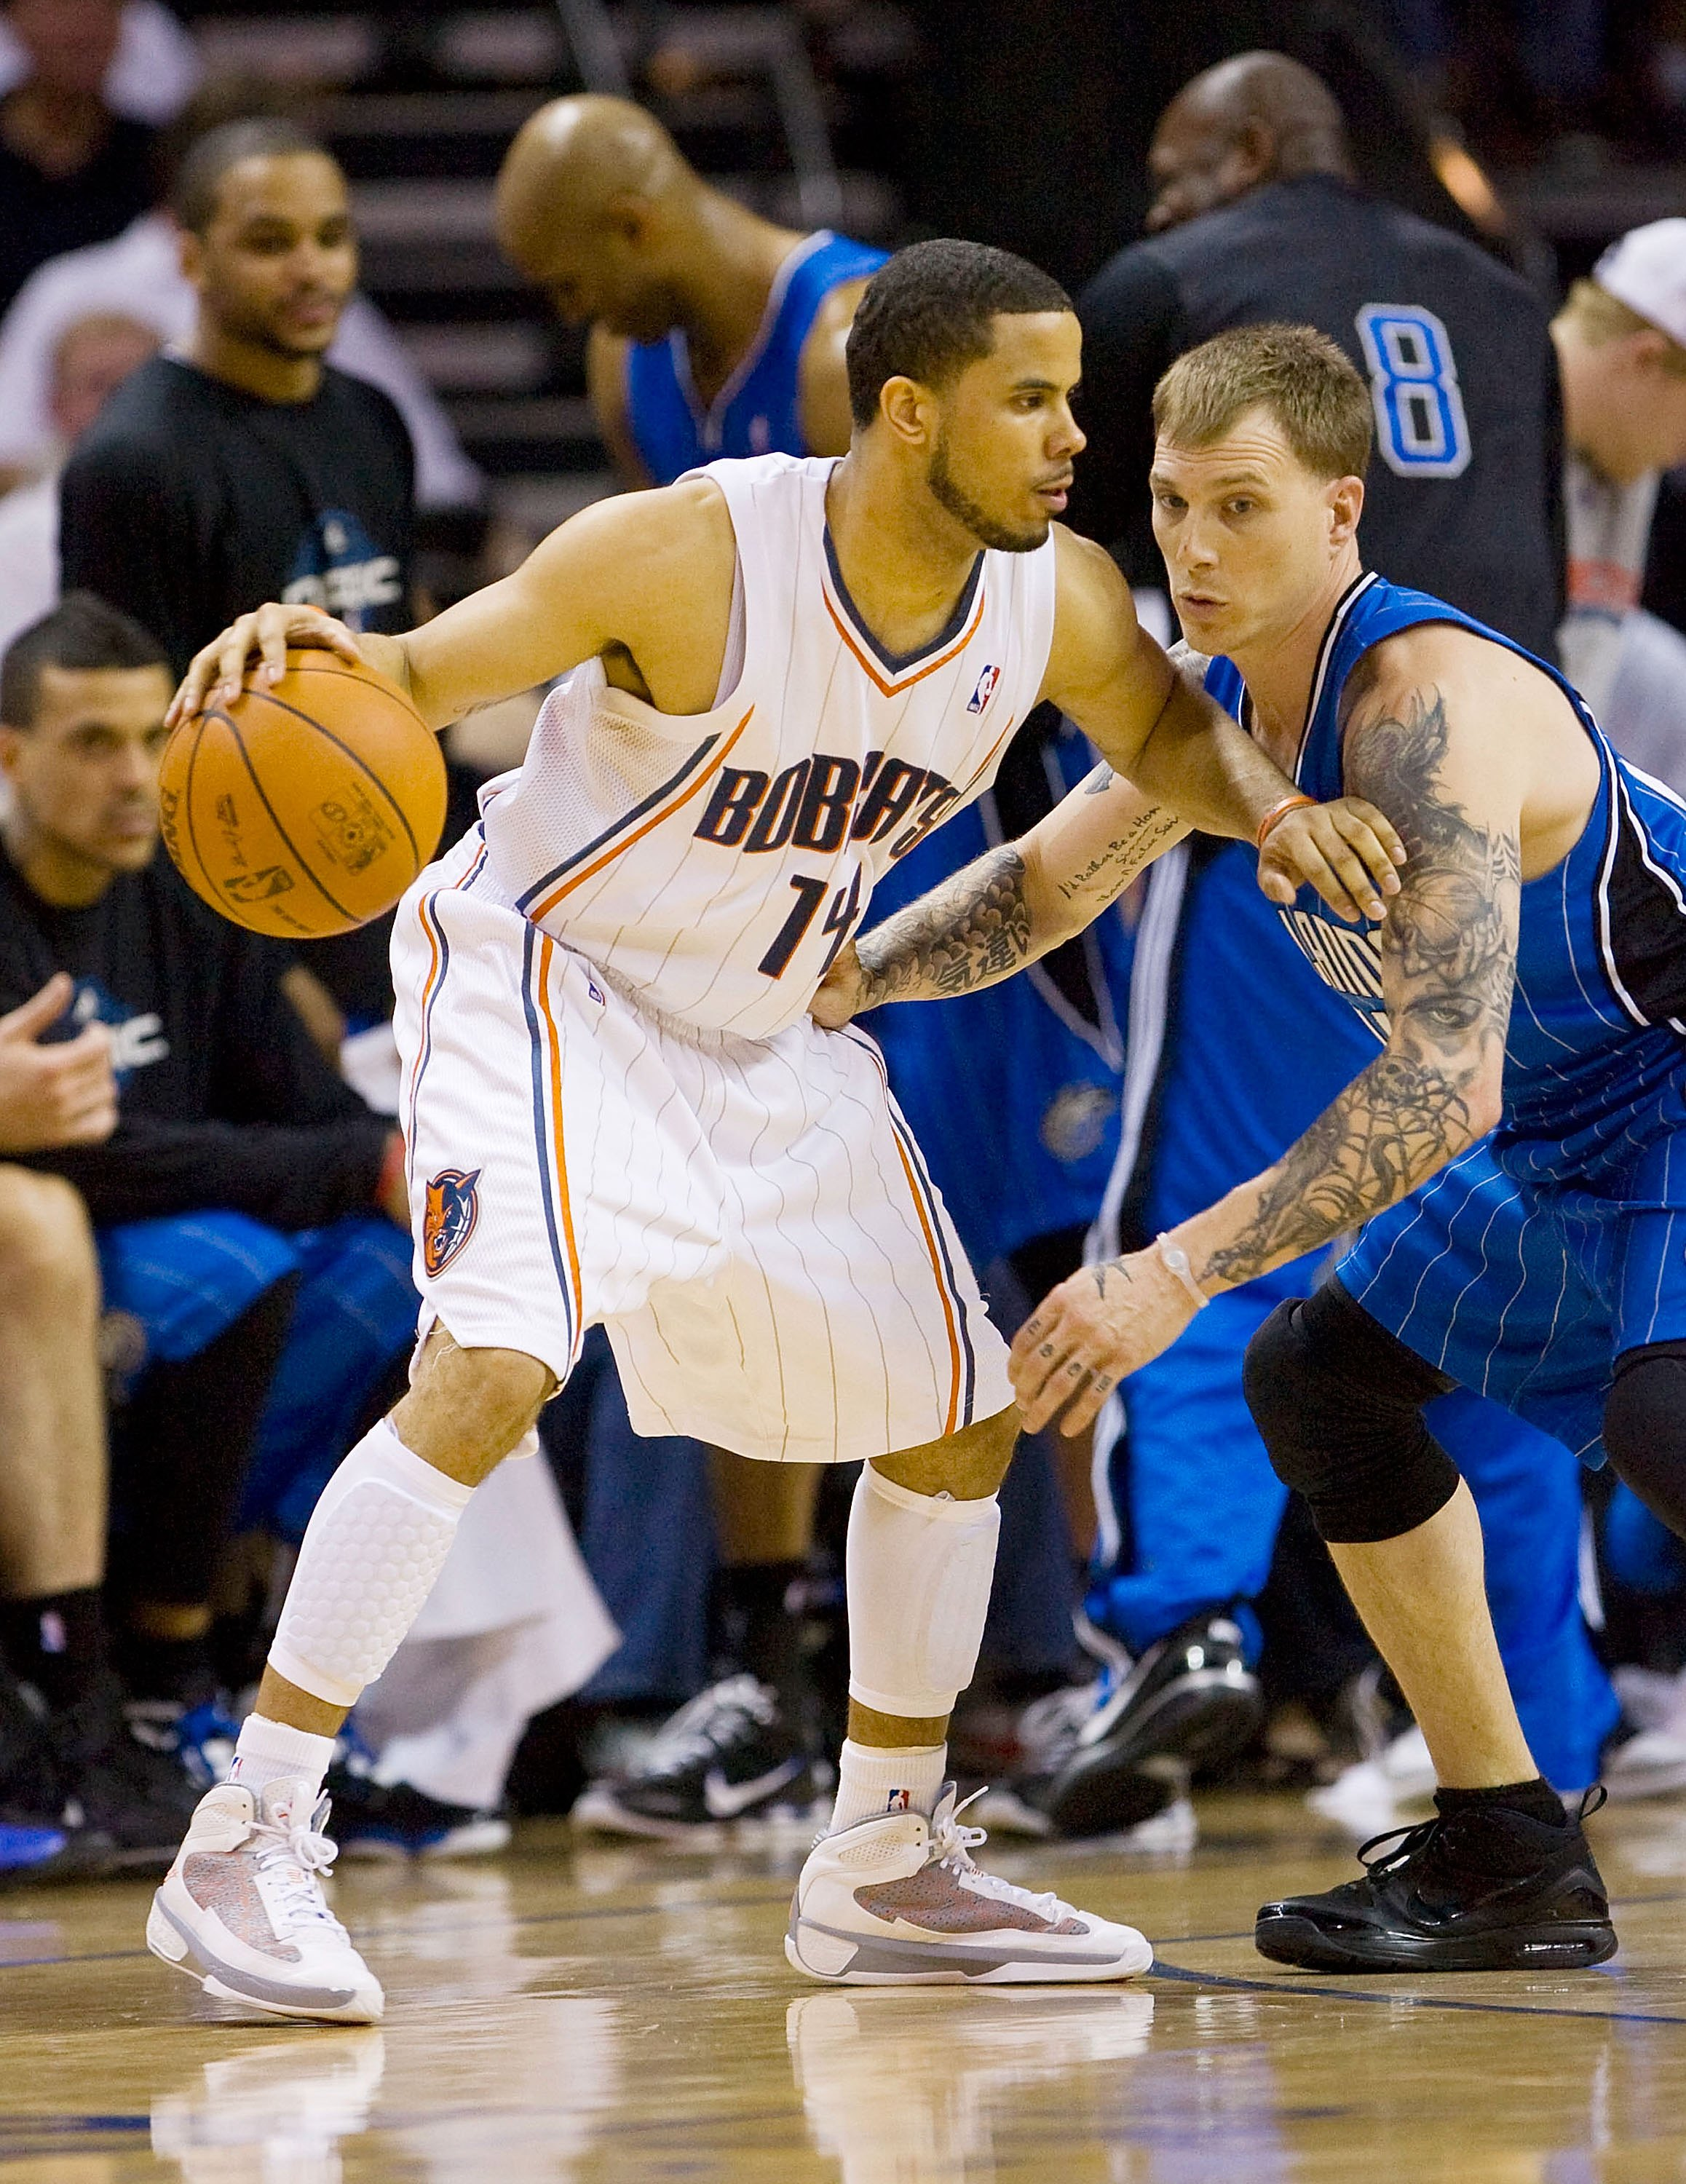 Can D.J. Augustin carry the Bobcats?